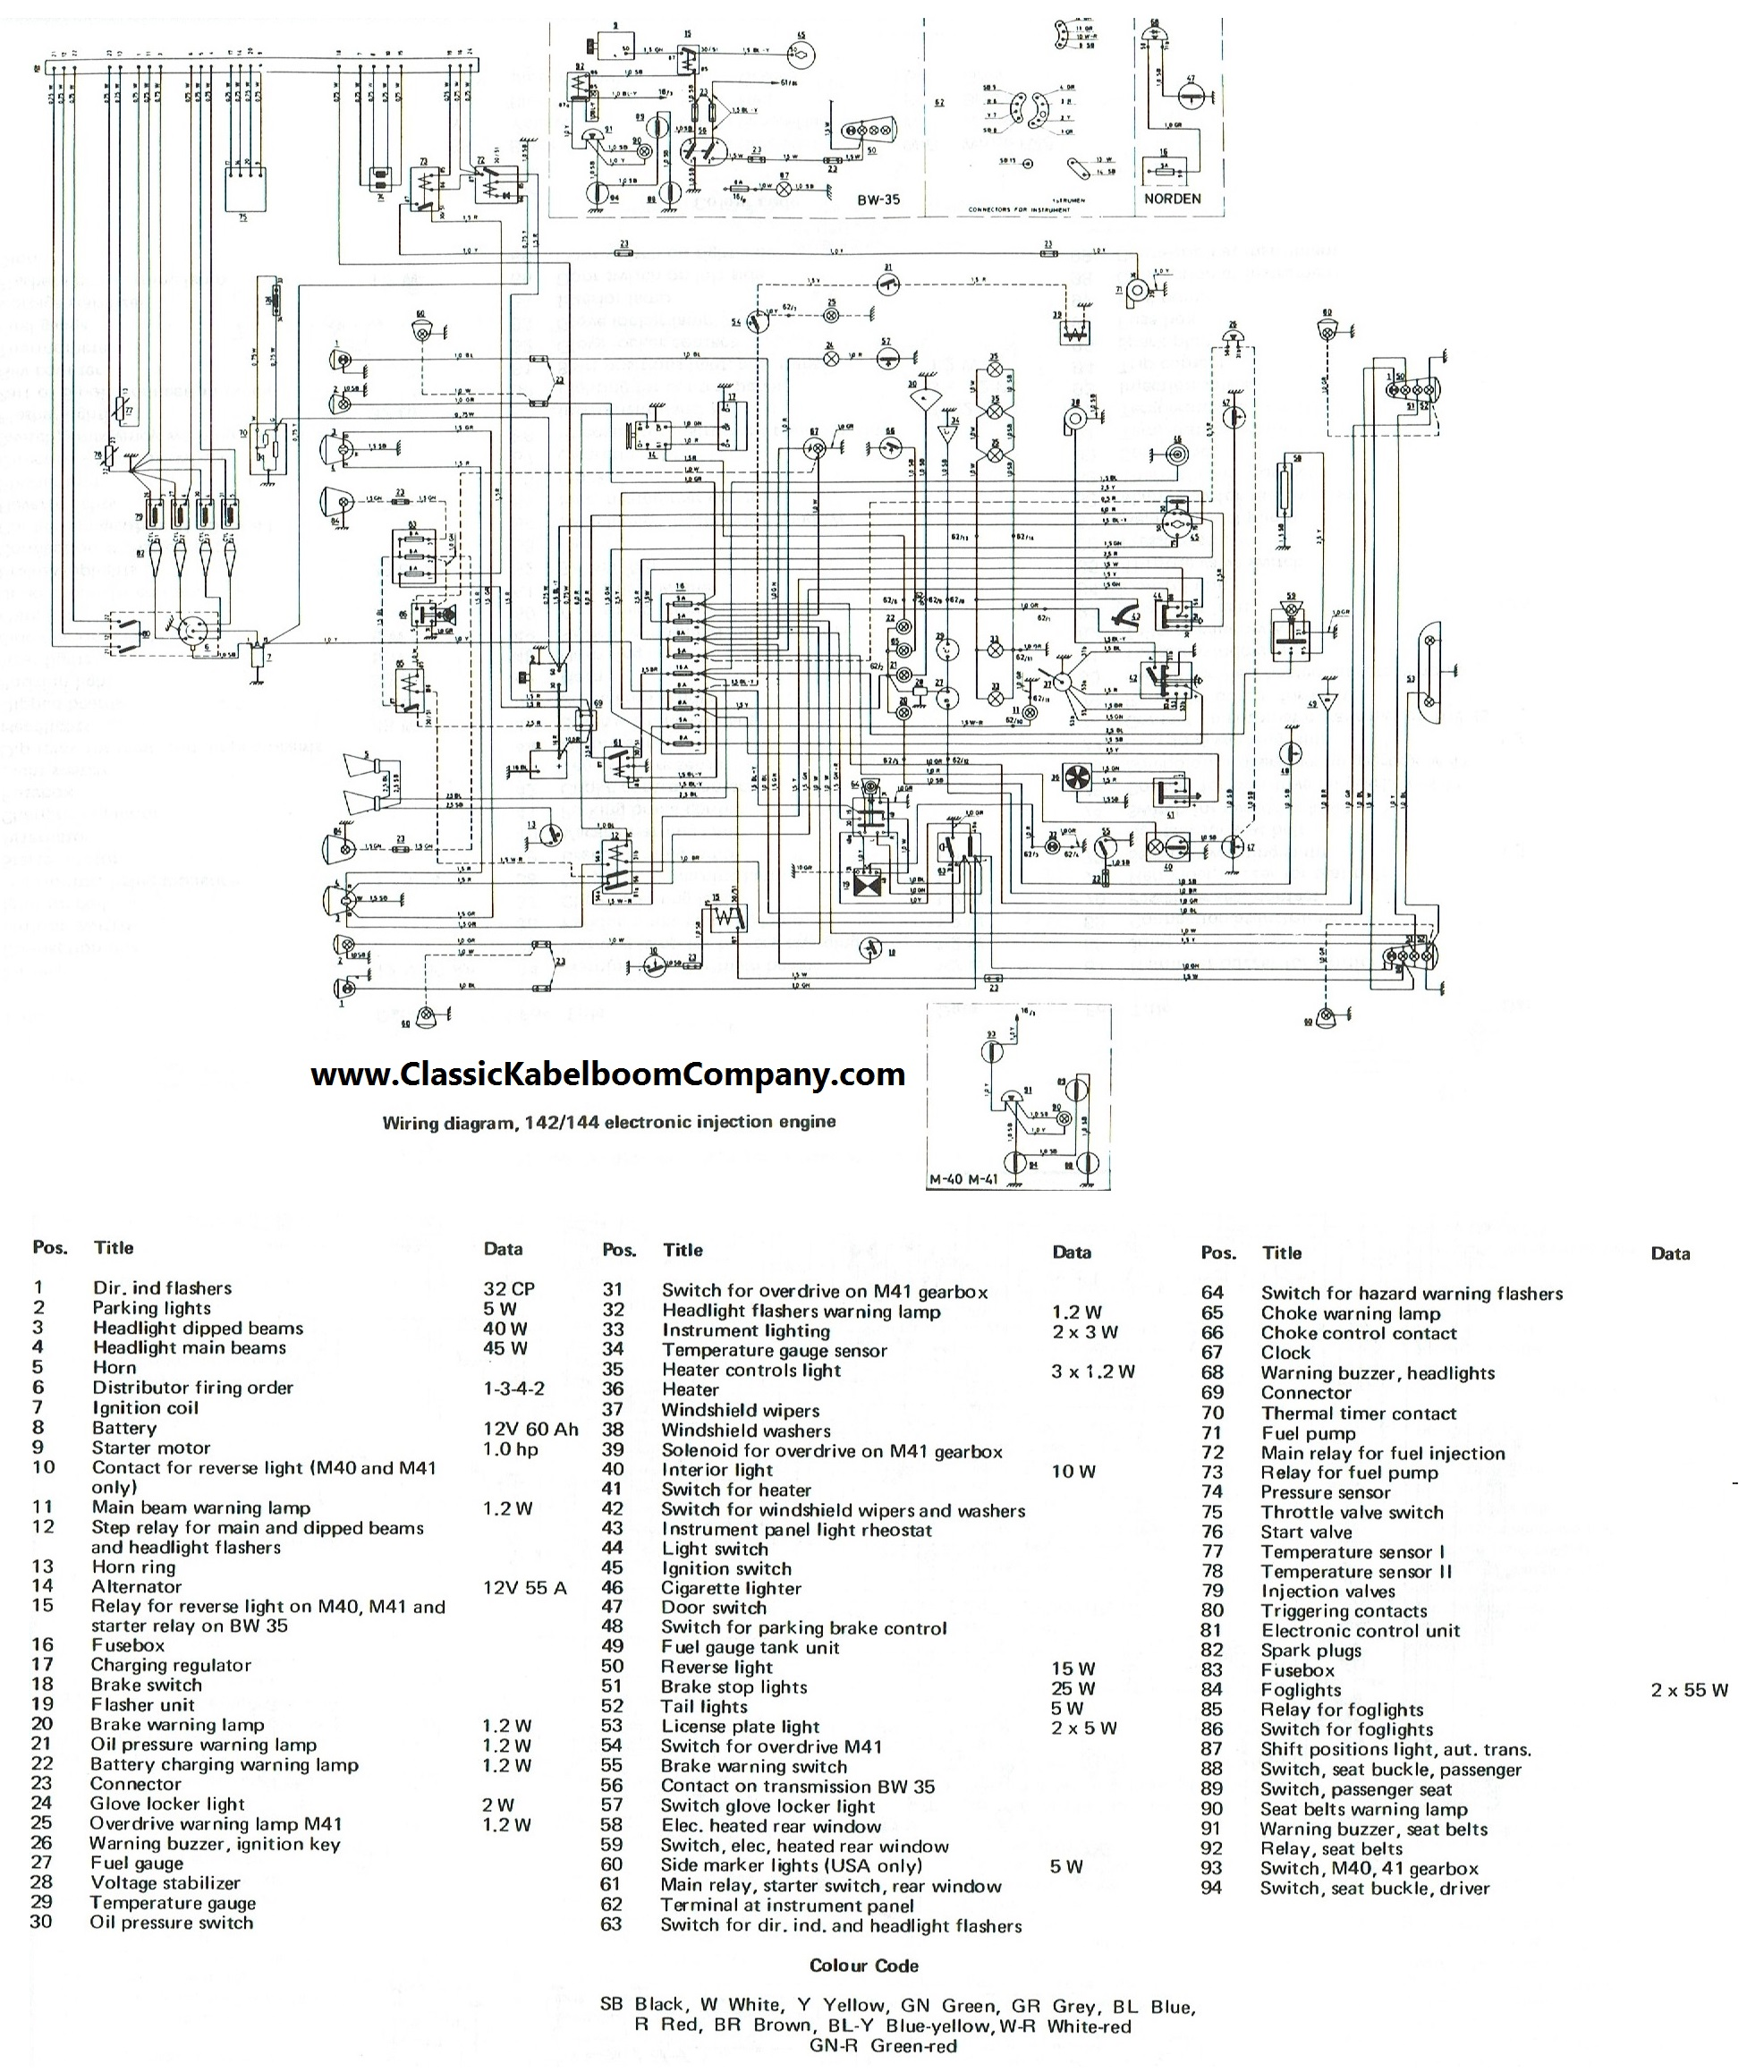 Volvo 140 142 144 145 1971 1972 D-jetronic fuel injection injectie B20E E  electrical wiring diagram elektrisch bedrading schema.